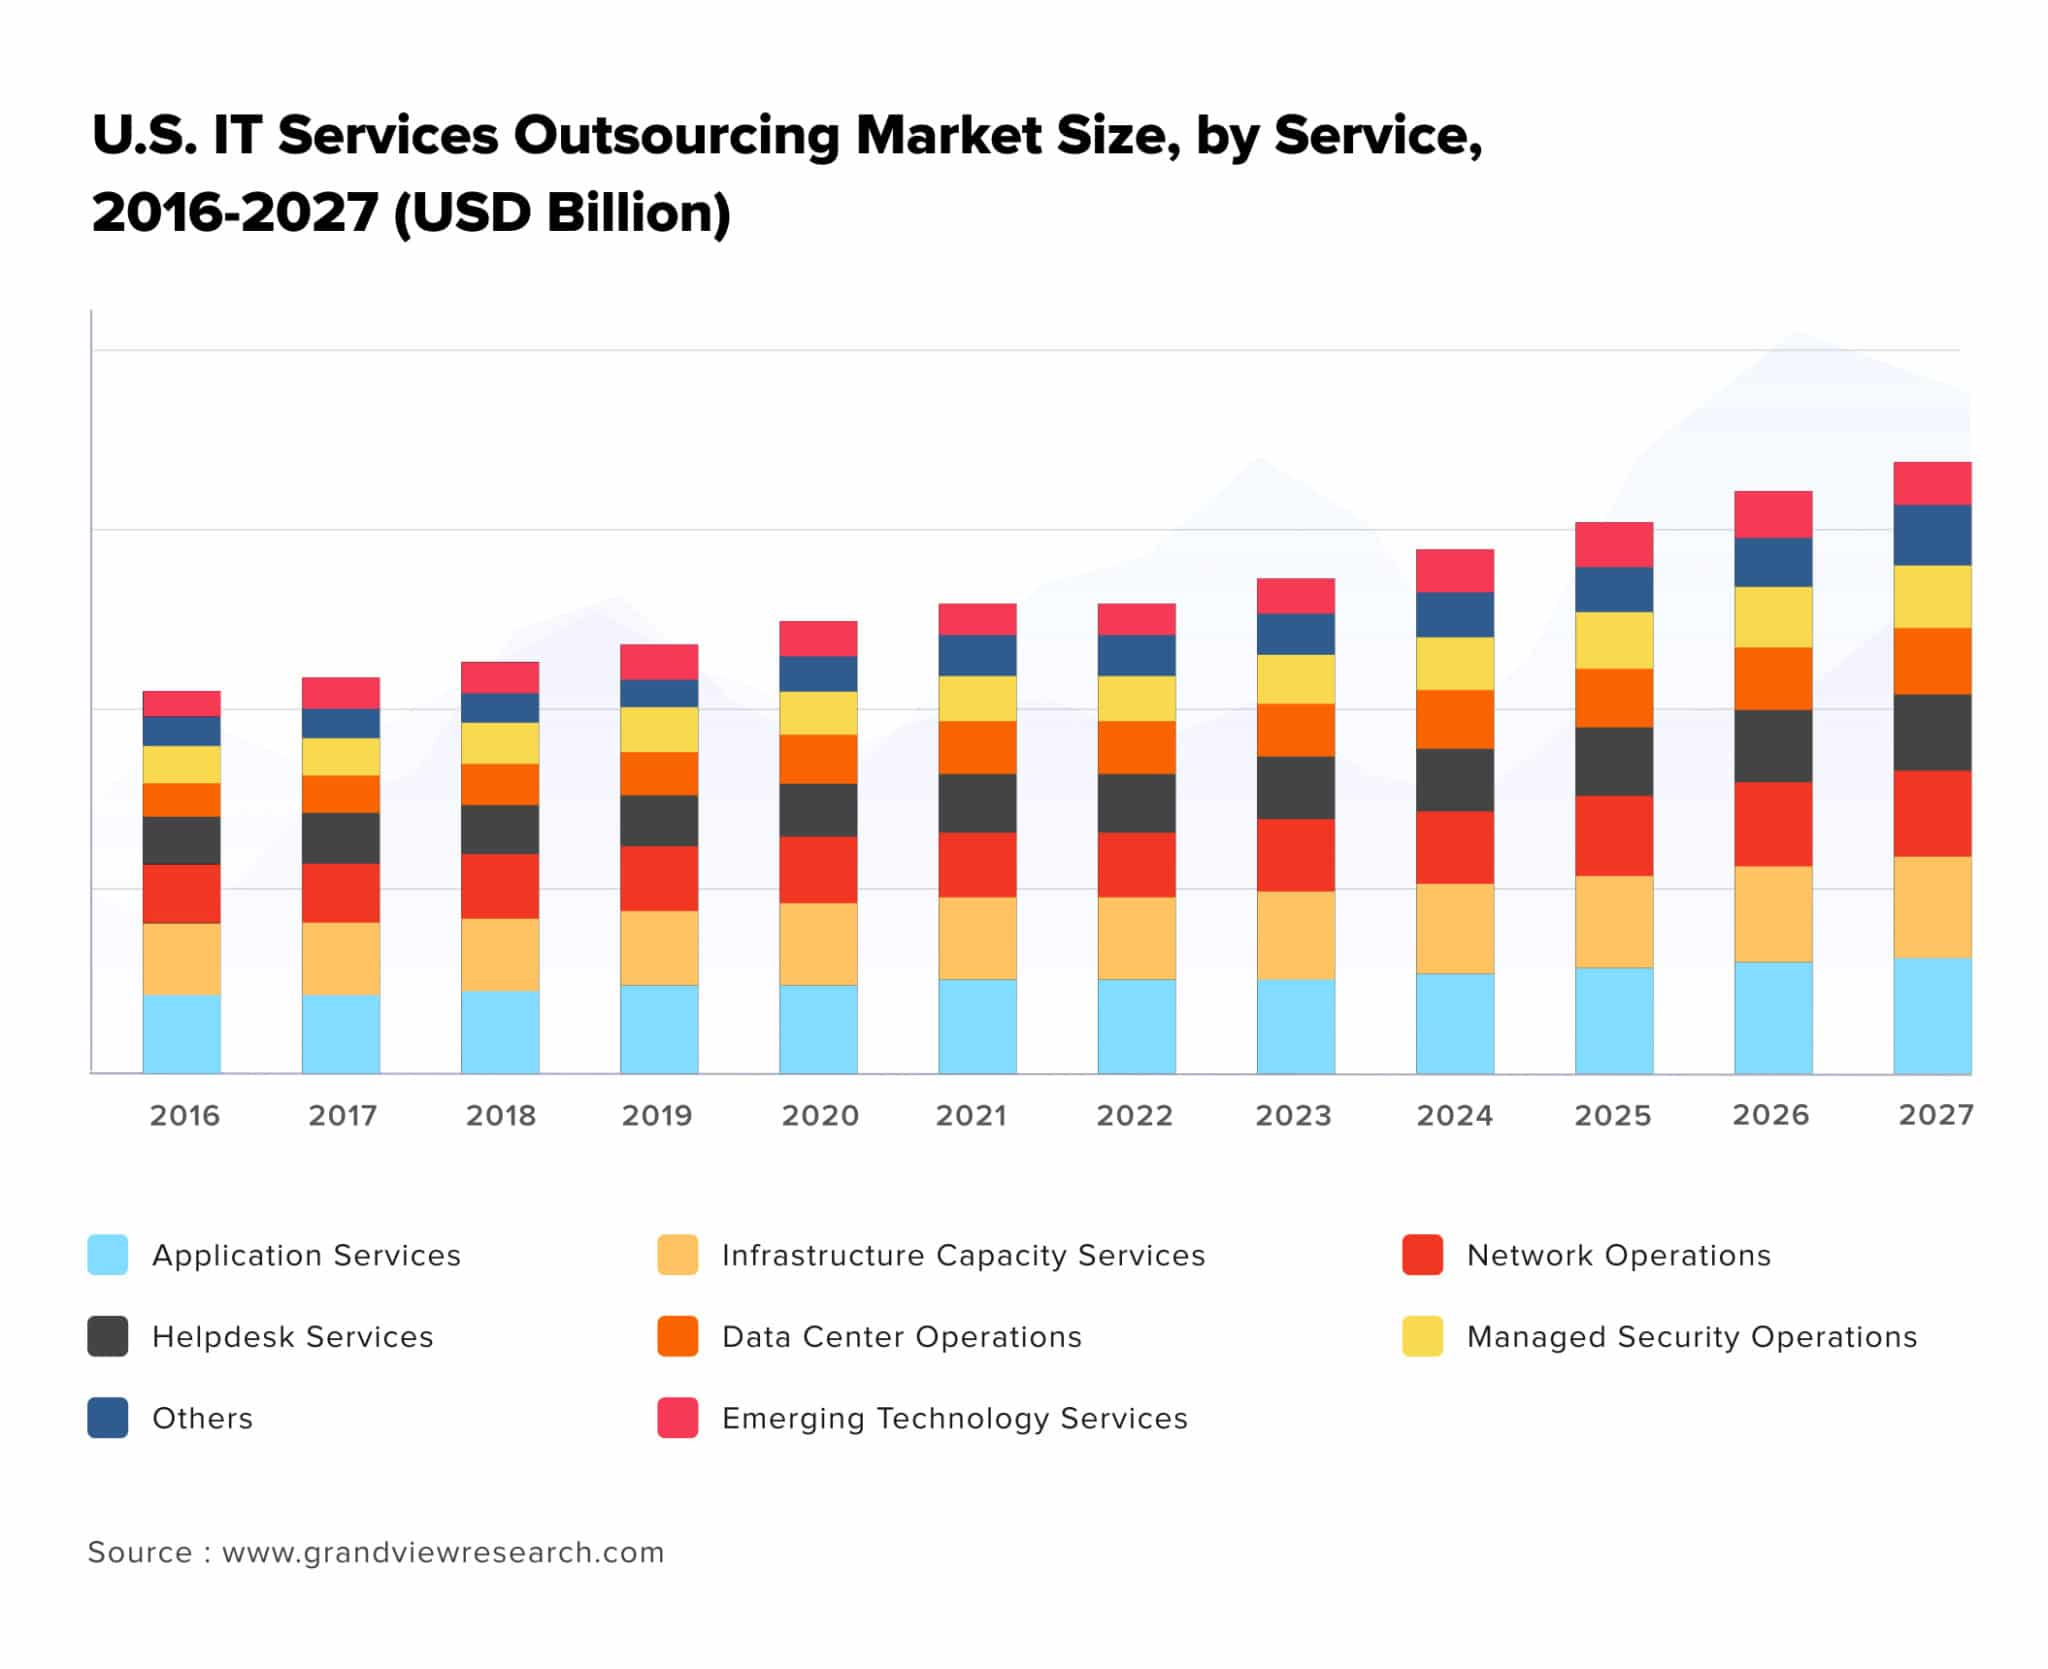 US IT Services Outsourcing Market Size